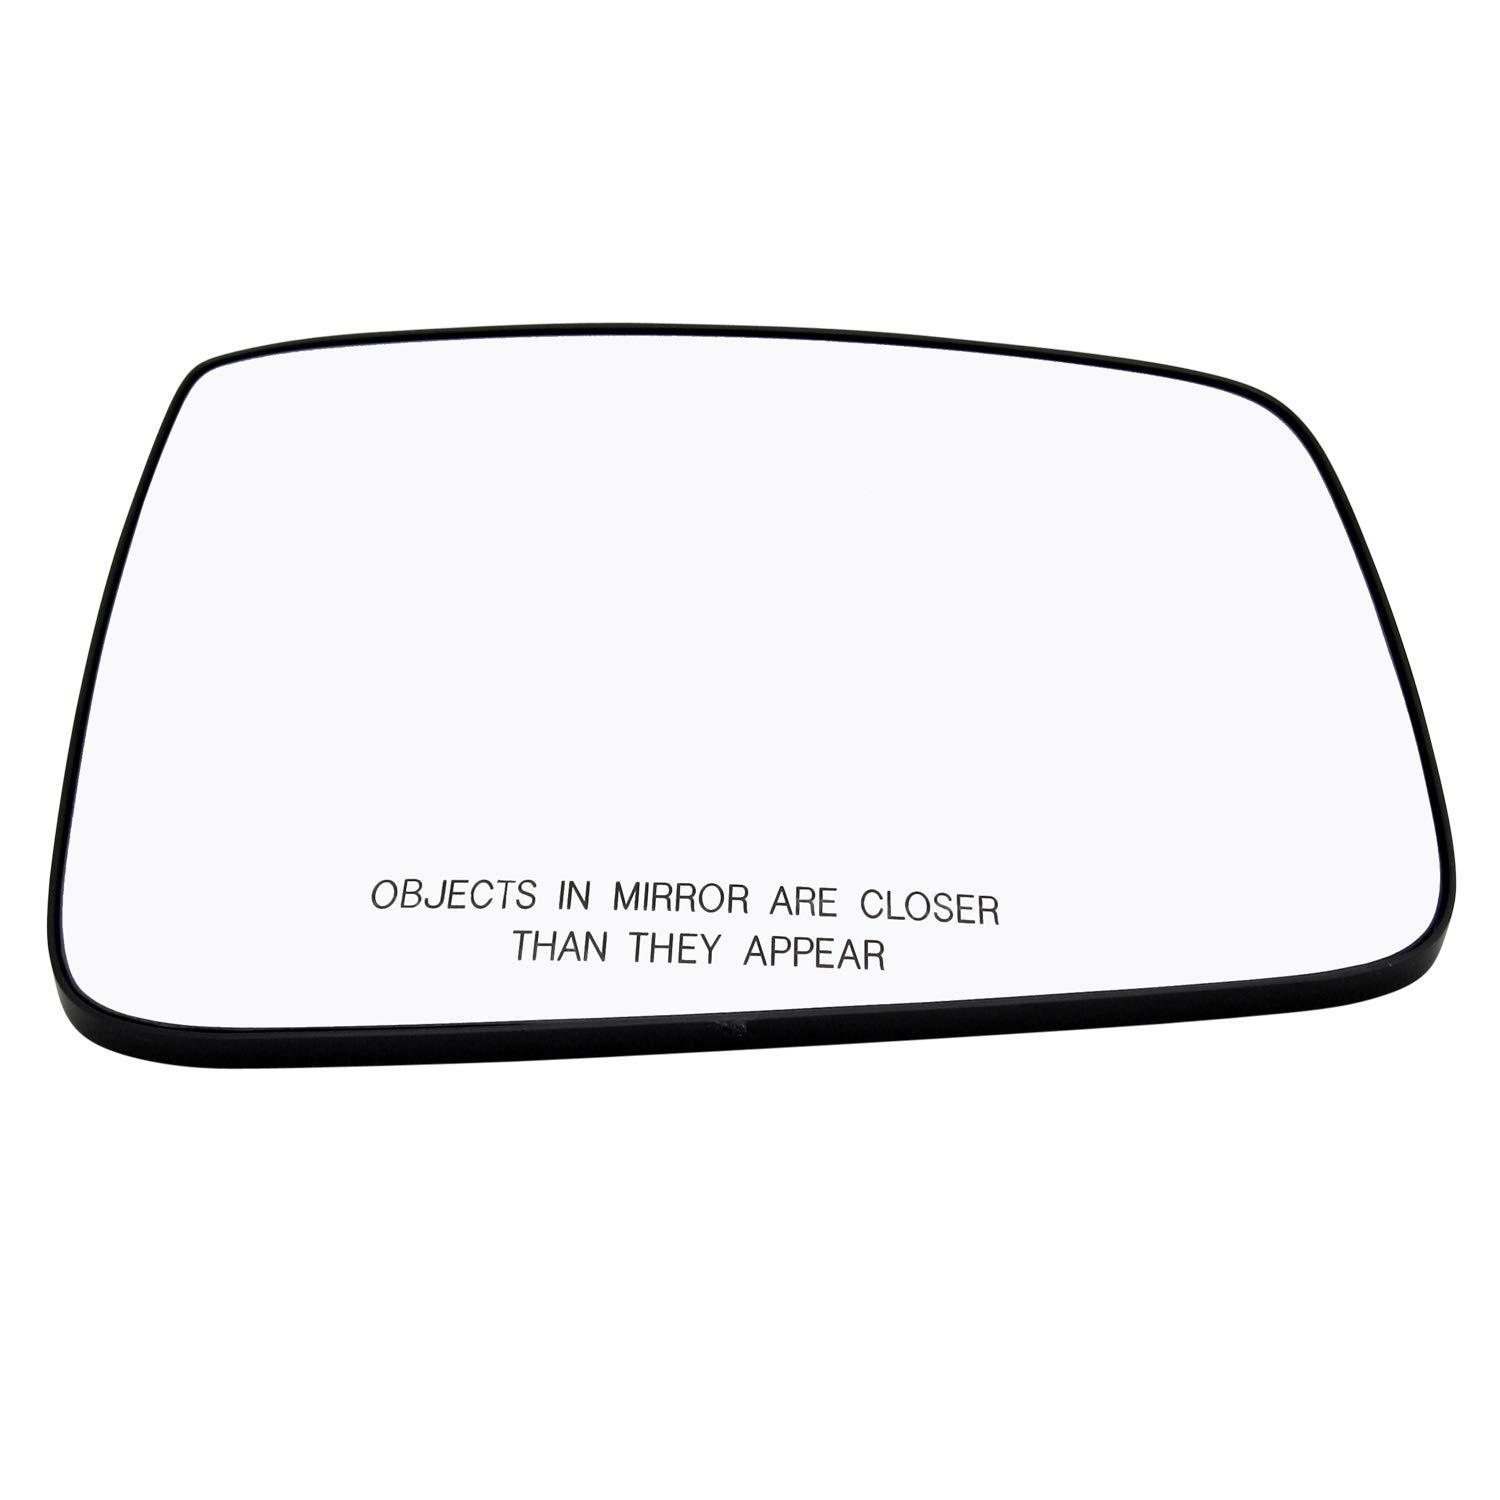 New Passenger Side Mirror Glass Replacement W Backing Compatible With Dodge RAM 1500 2500 3500 RAM 1500 2500 3500 4500 Sold By Rugged TUFF Classic